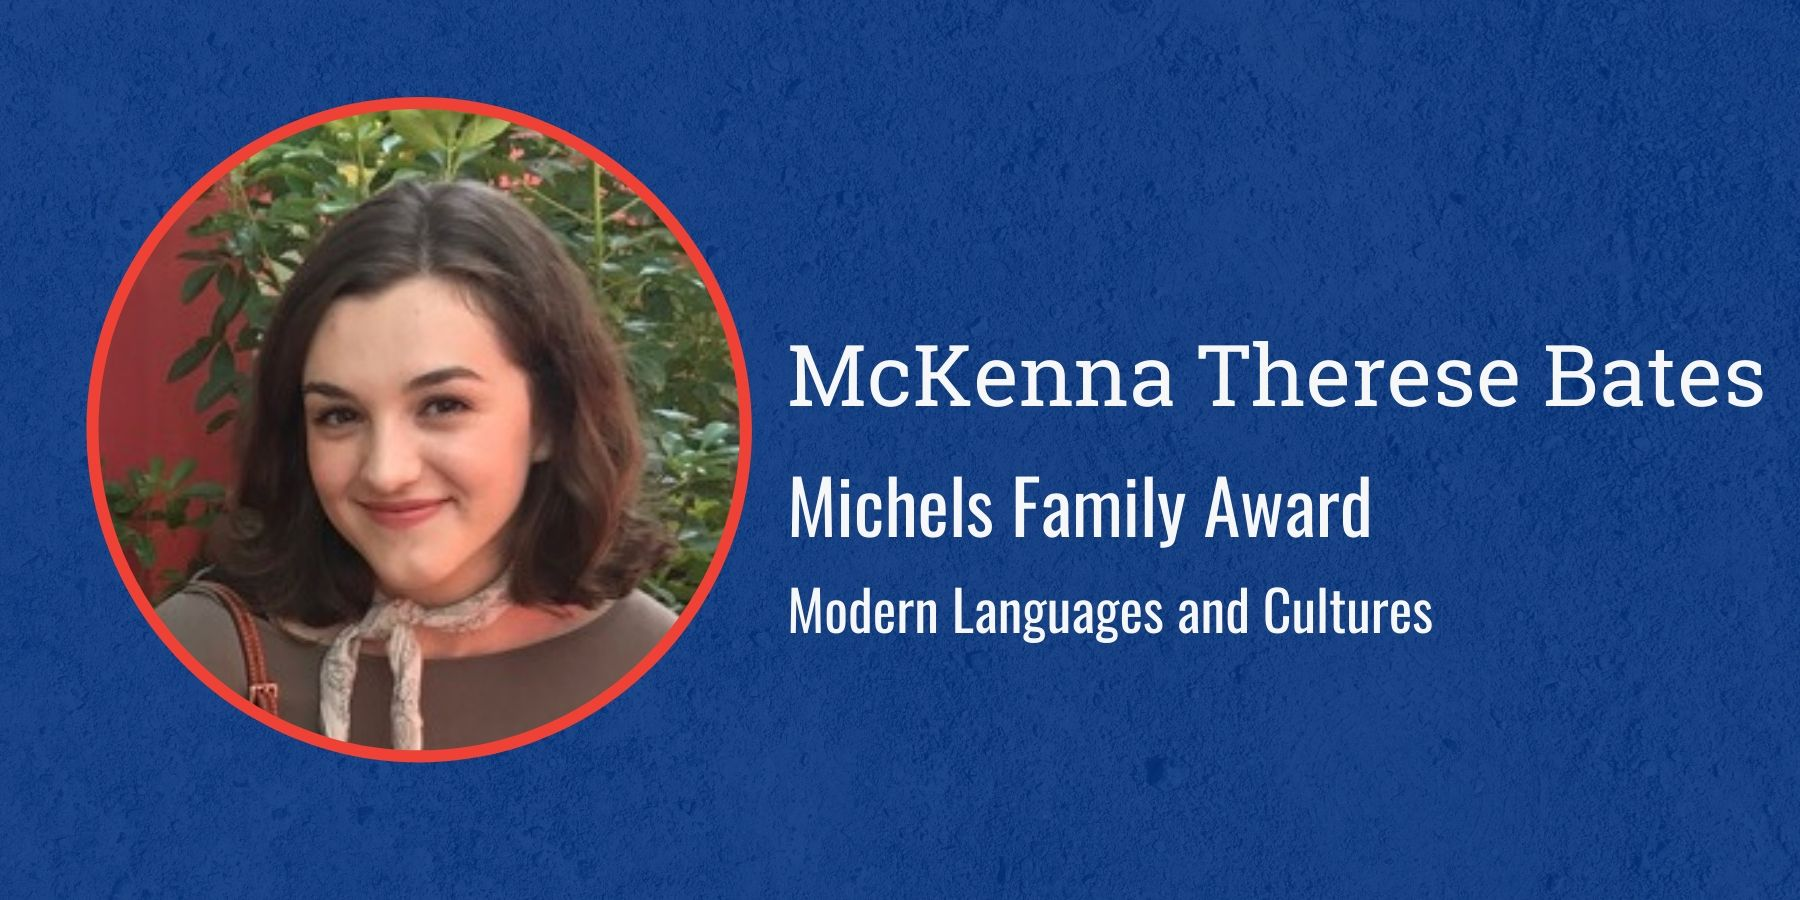 Photo of McKenna Therese Bates and text Michels Family Award Modern Languages and Culture